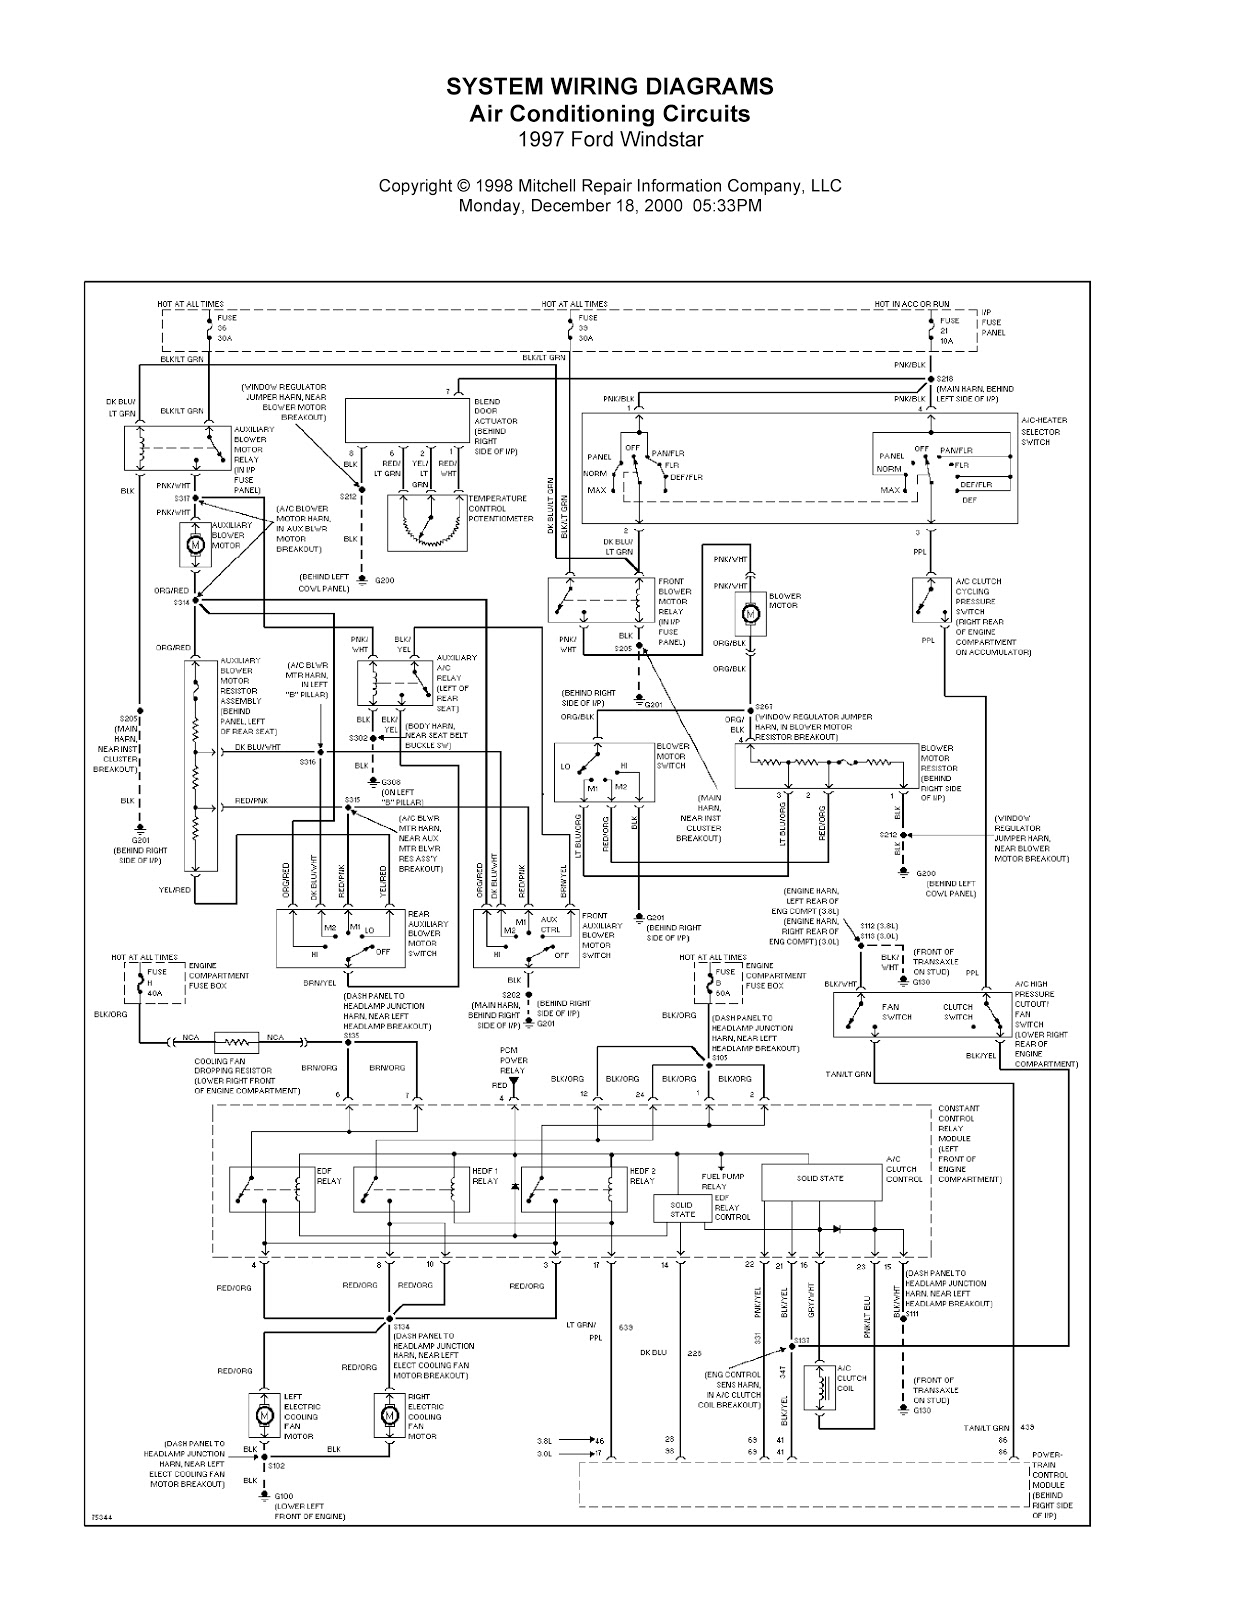 1997 Ford Windstar Complete System Wiring Diagrams | Wiring Diagrams ...